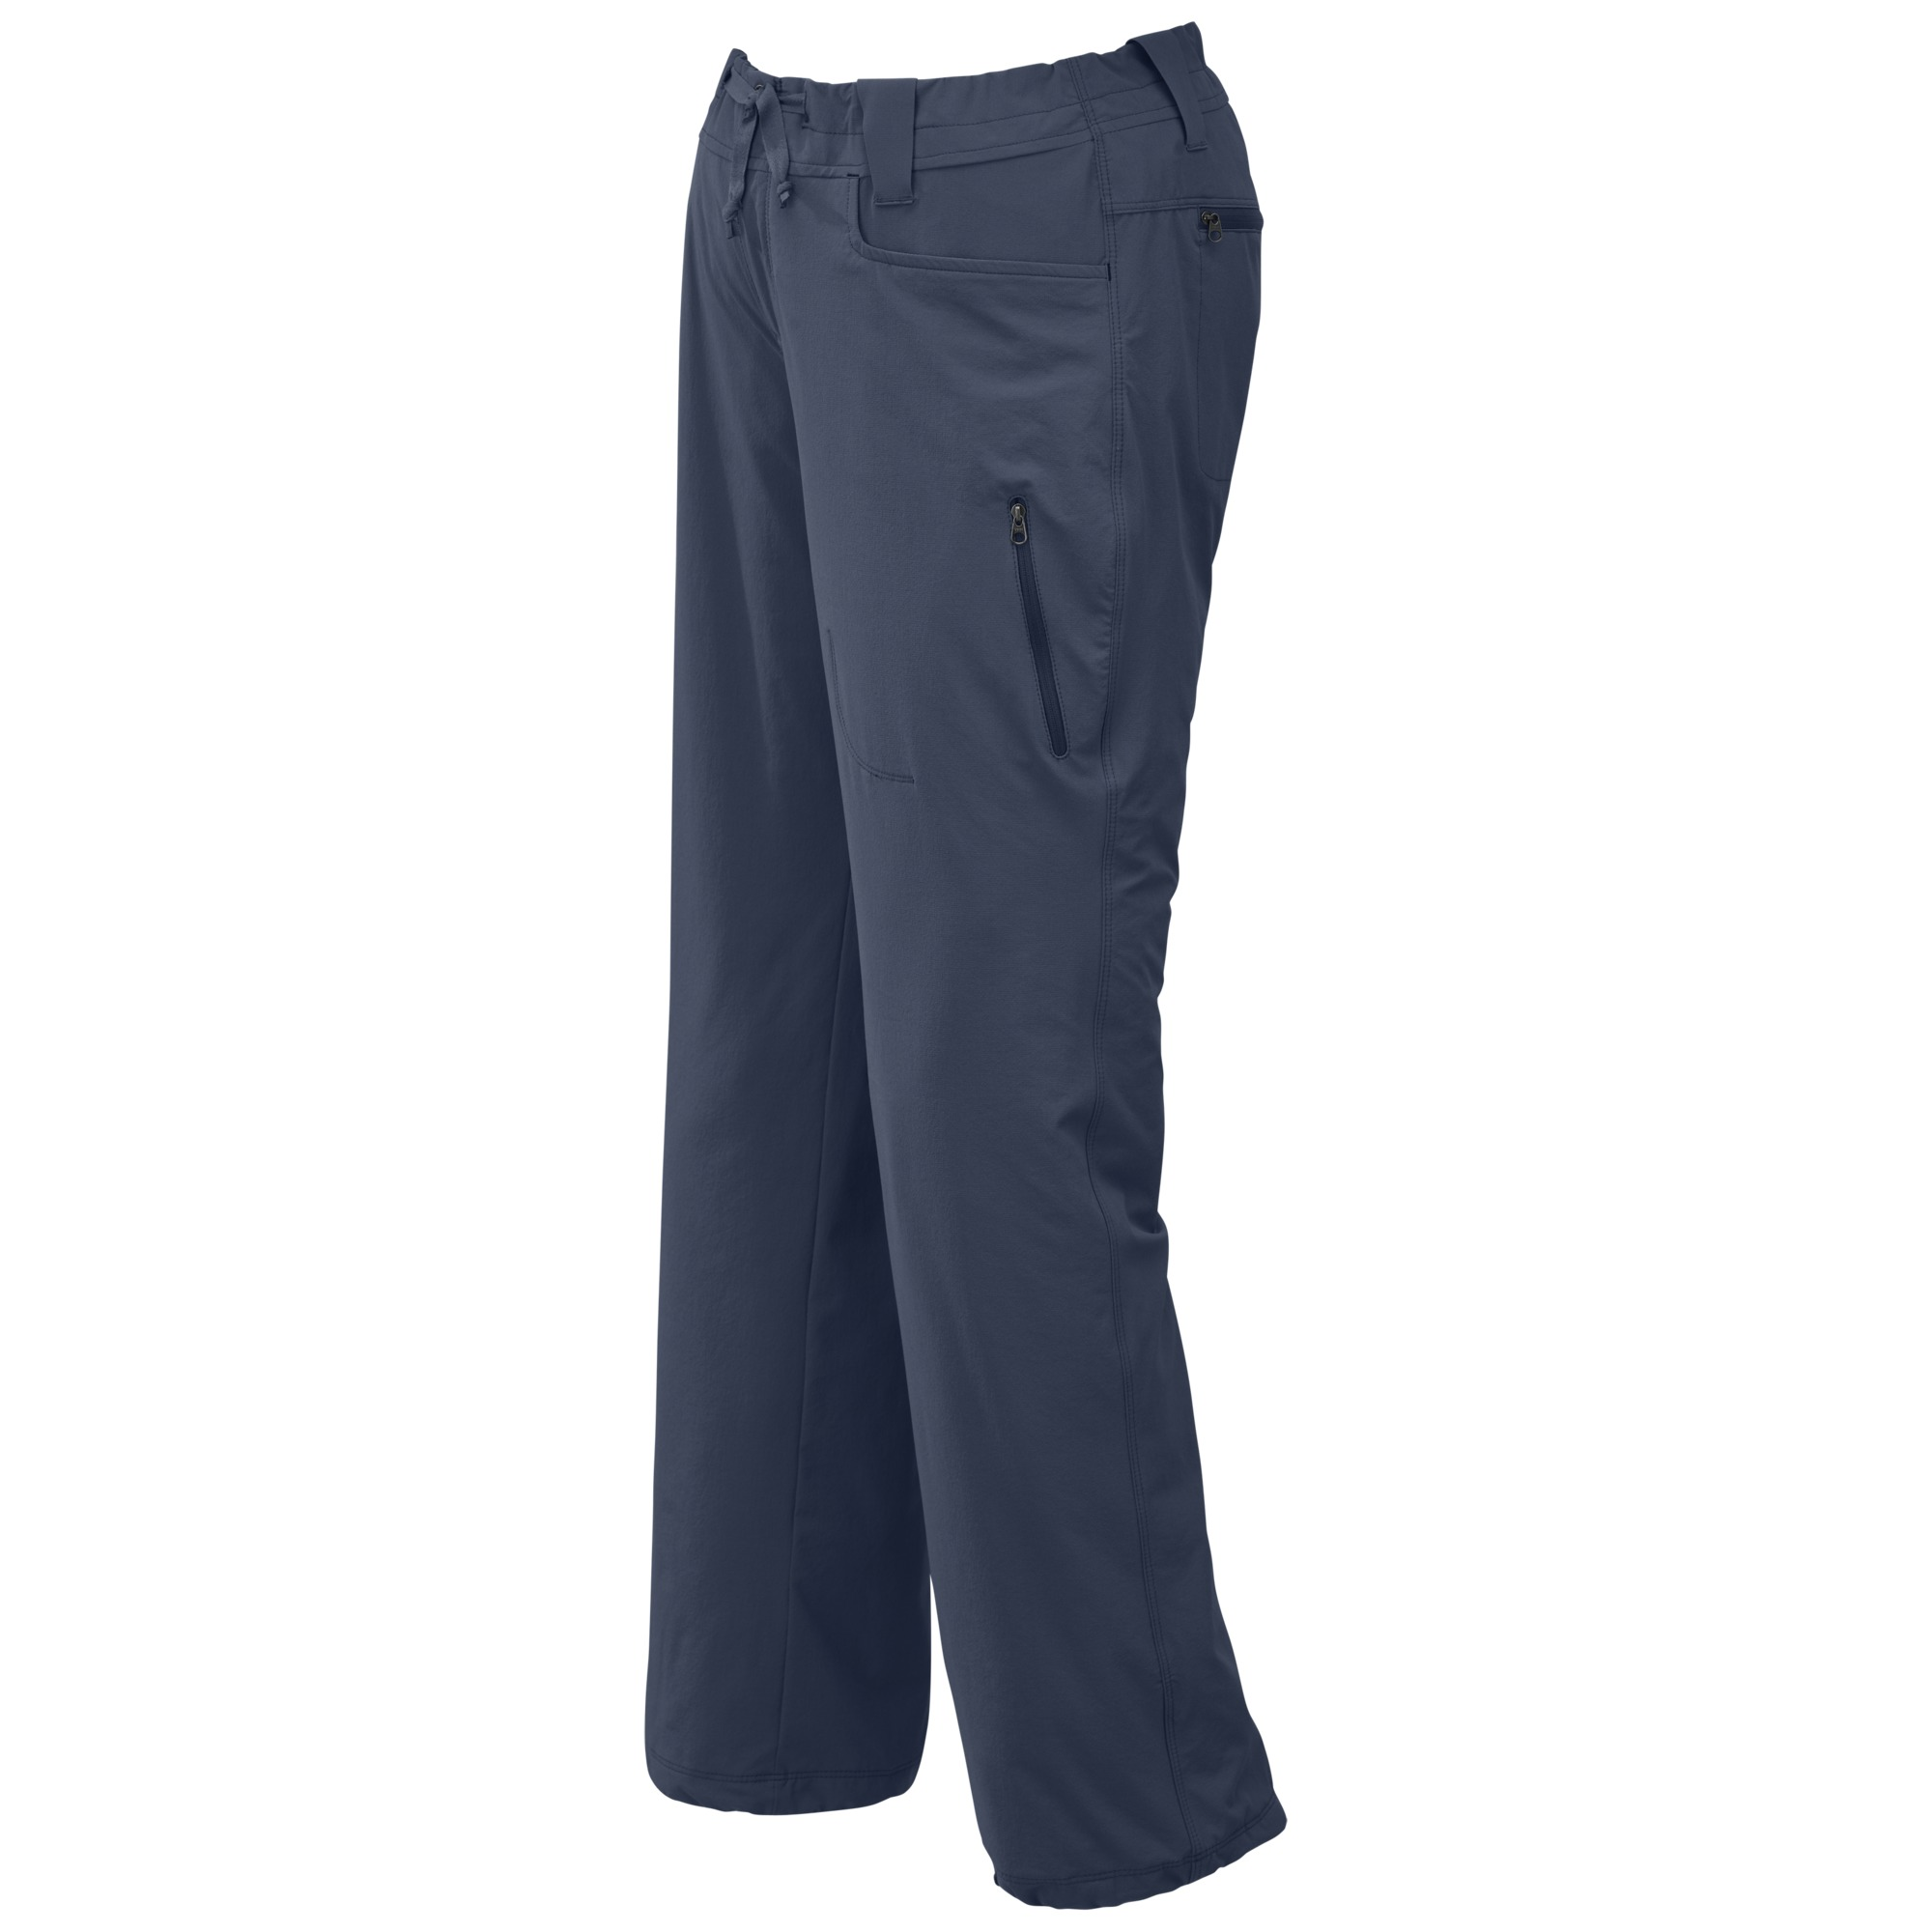 Outdoor Research Women's Ferrosi Pants-night-4 - Gr. 4